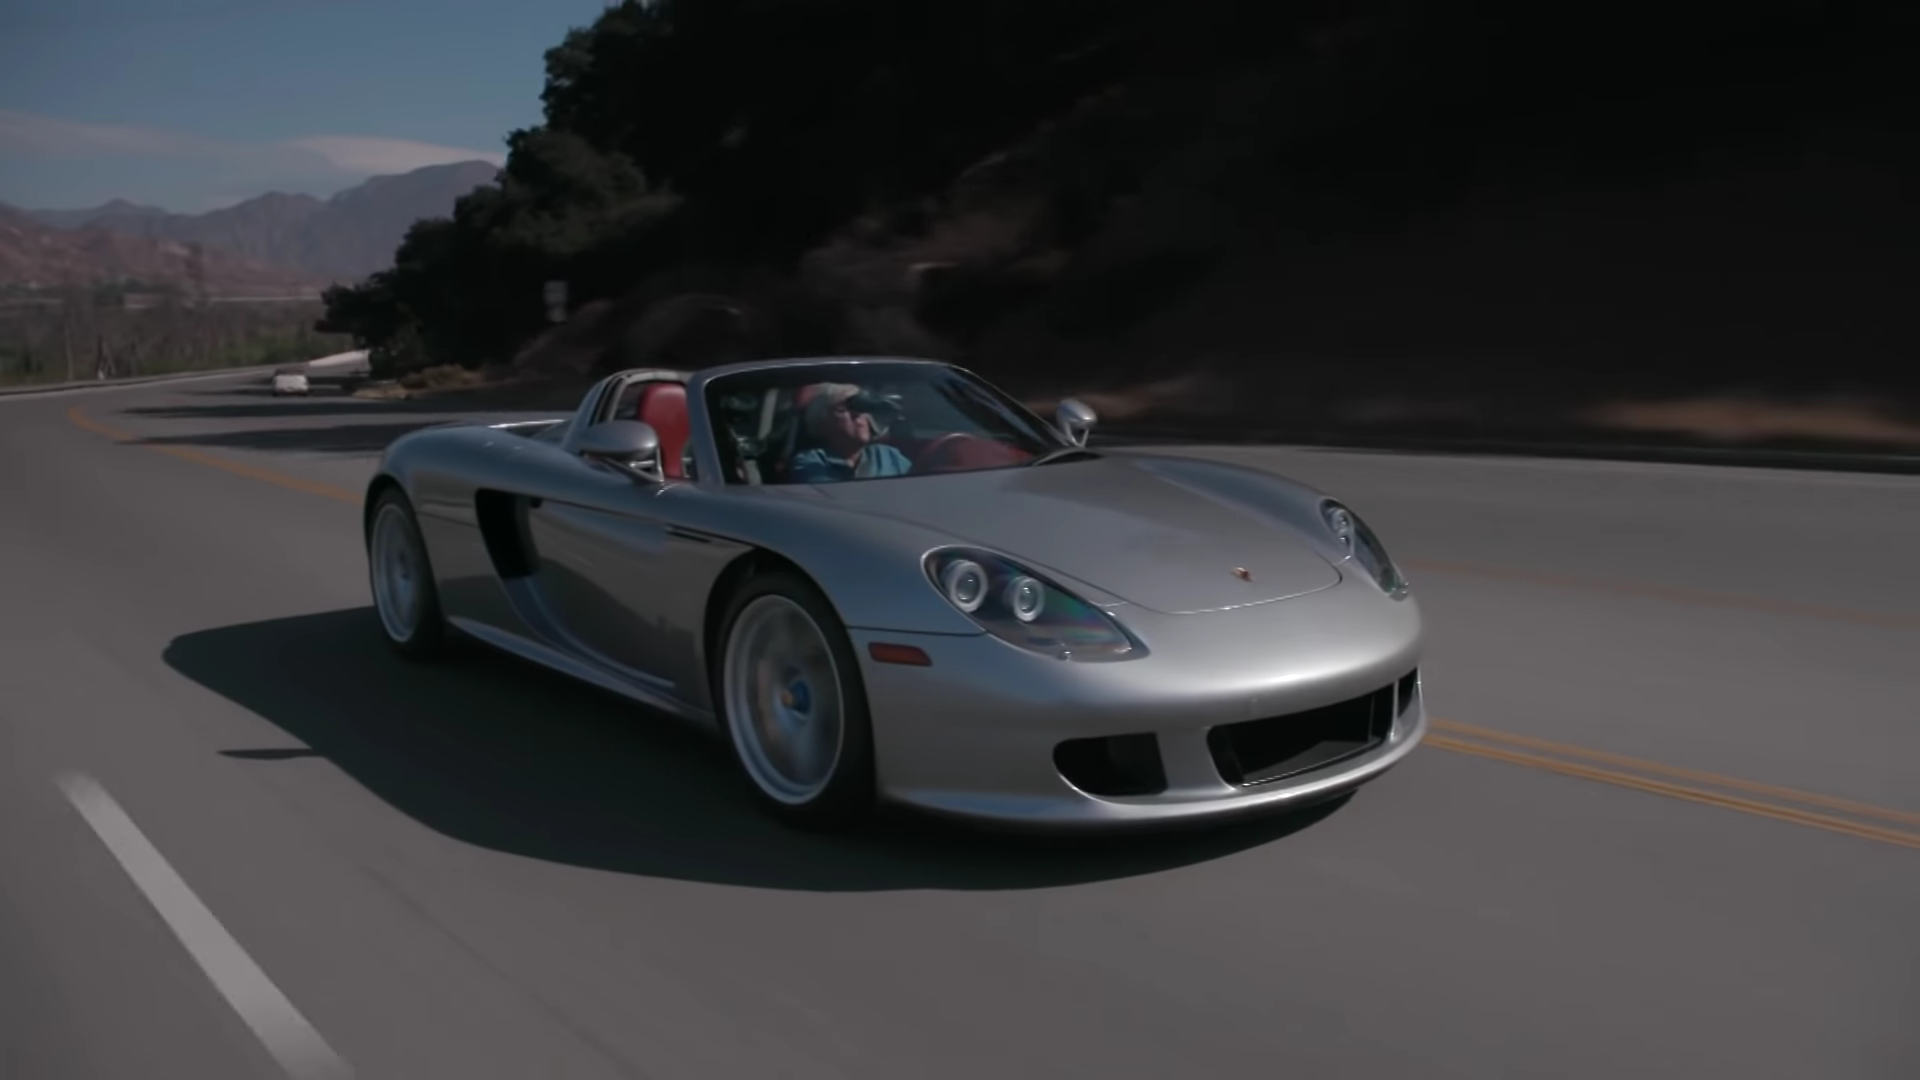 Jay Leno Takes Us on an Emotional Tour of His Carrera GT